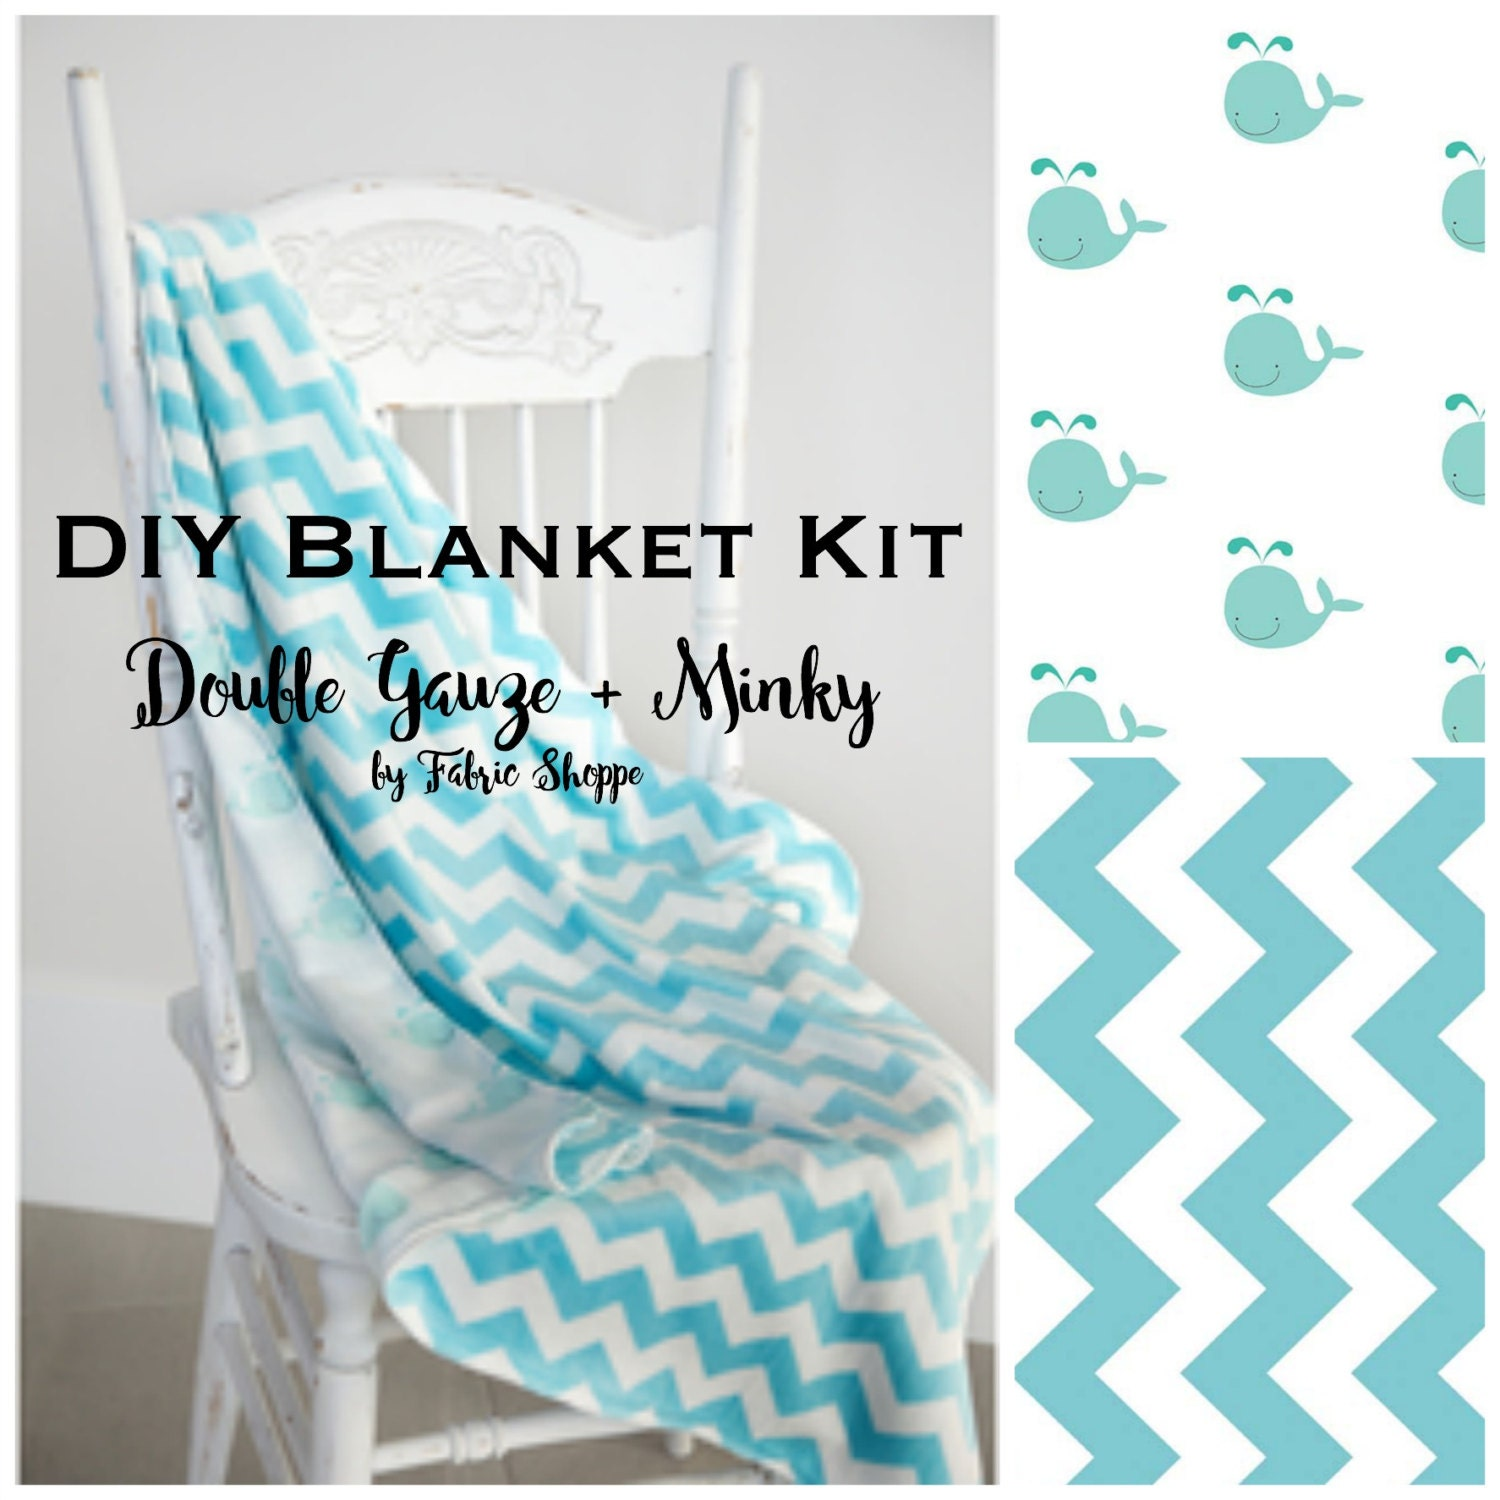 Diy quilt kit baby boy quilt baby blanket kit double gauze fabric diy quilt kit baby boy quilt baby blanket kit double gauze fabric whale fabric chevron baby fabric baby gift make it yourself solutioingenieria Image collections